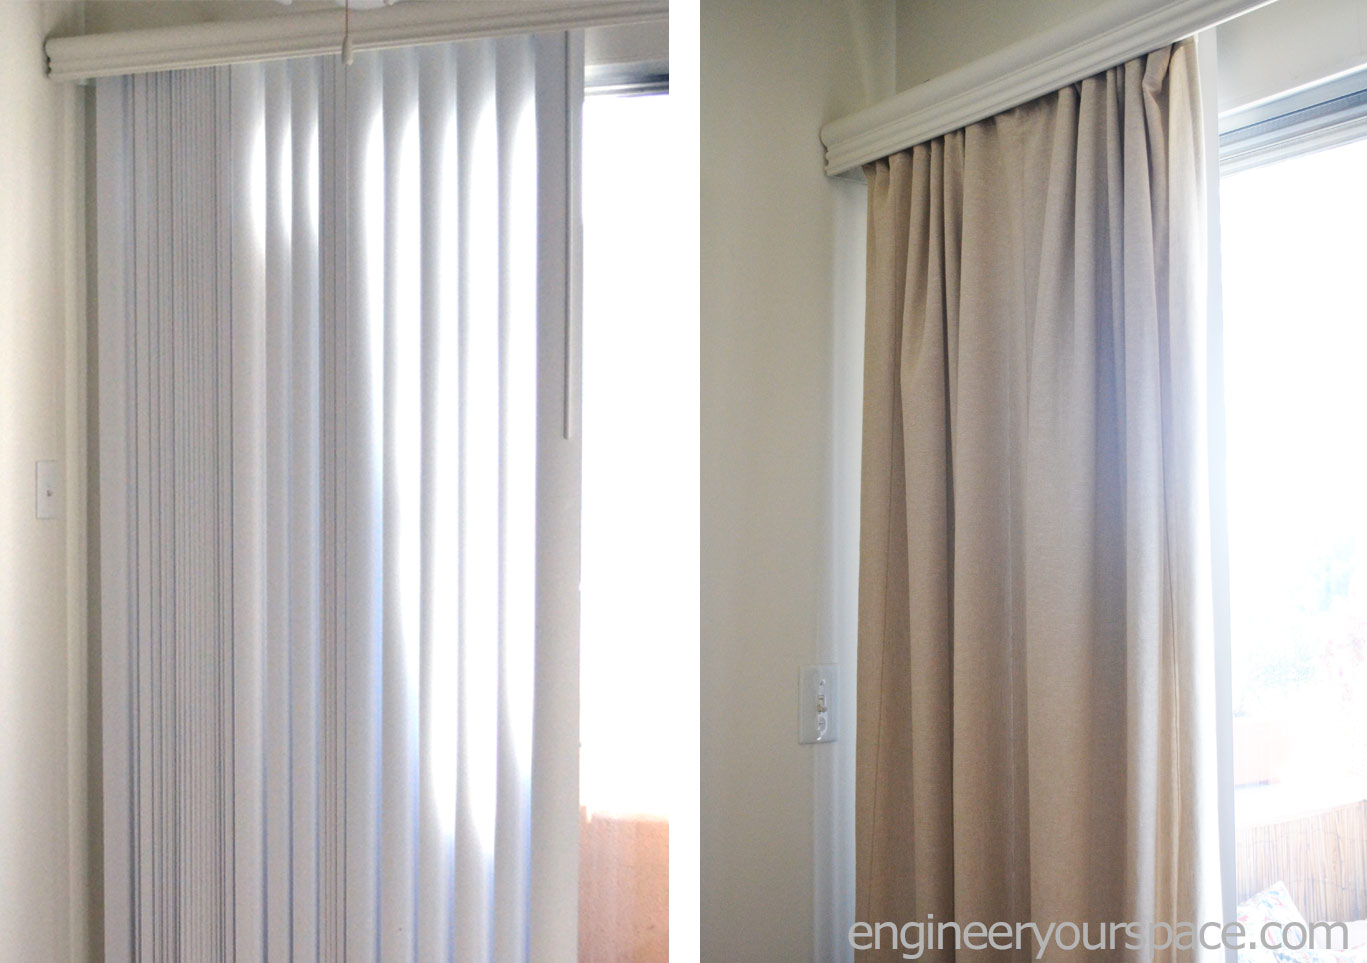 Diy Vertical Blinds How To Conceal Vertical Blinds With Curtains Smart Diy